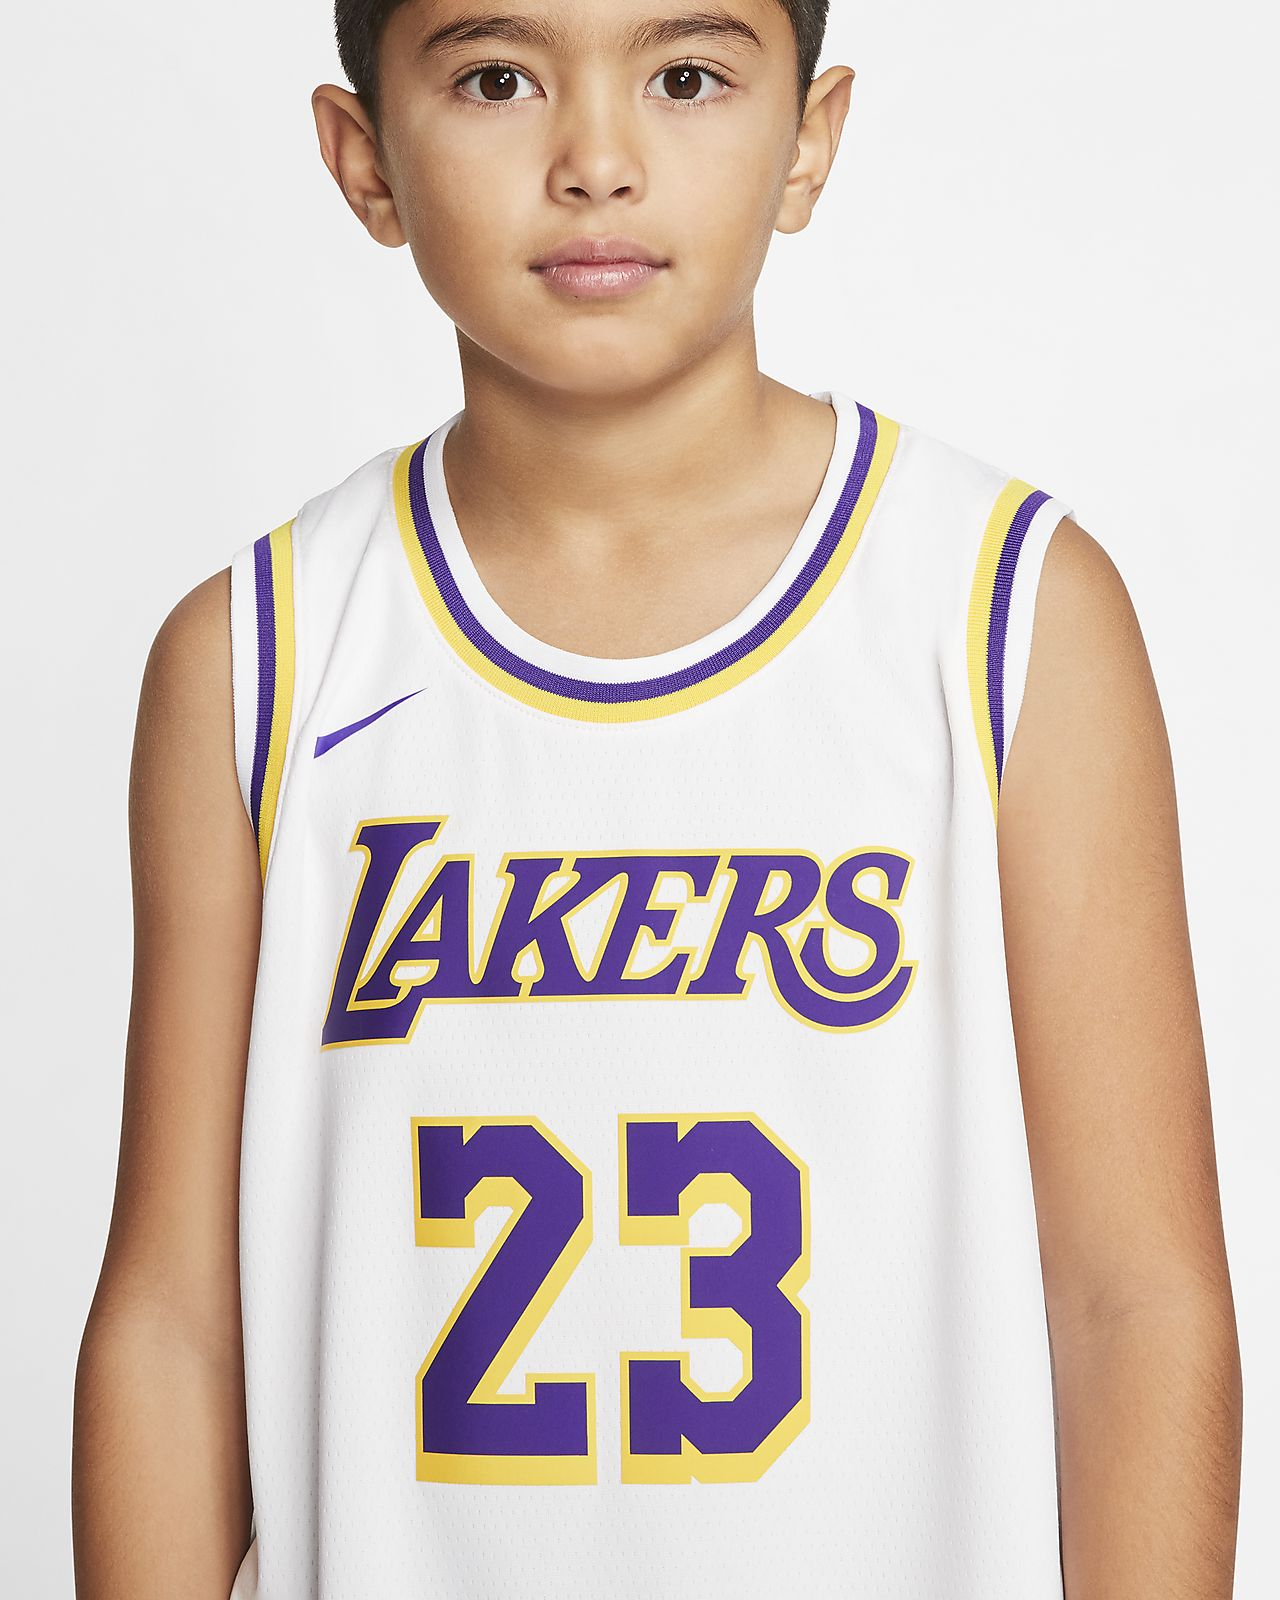 lebron lakers jersey for kids